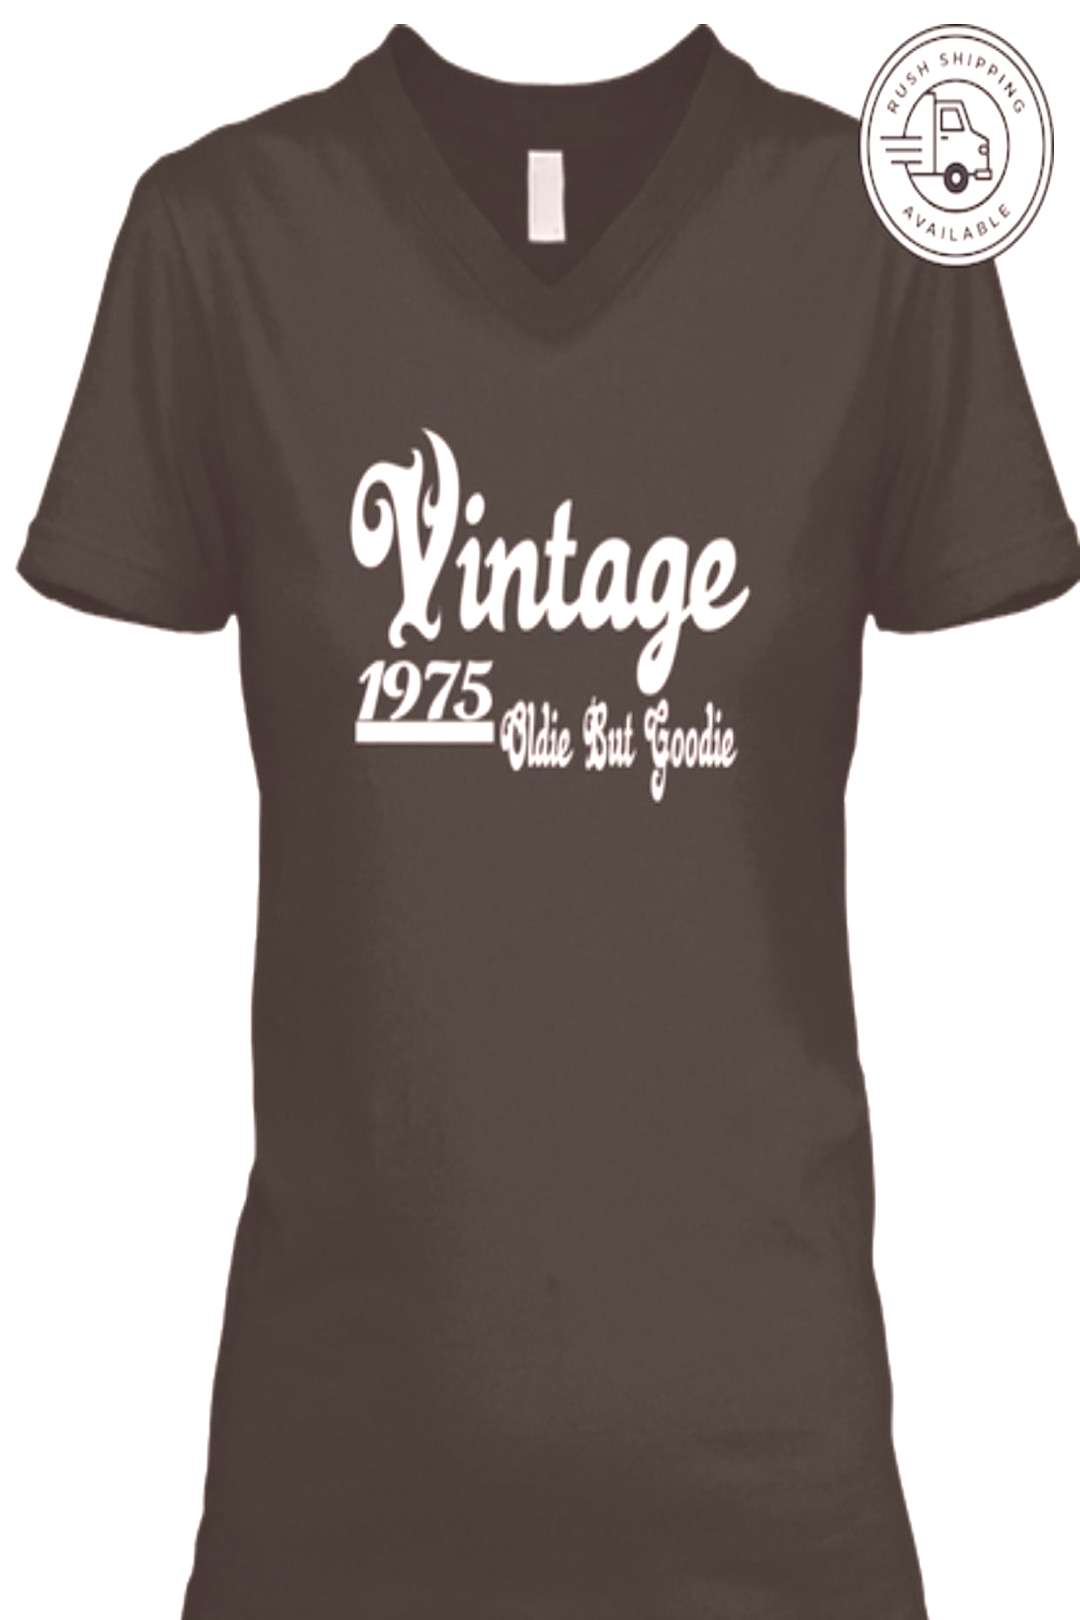 Retro Birthday 1975 Vintage Oldie But Goodie Ladies Tshirt  In Stock! Cute Retro Birthday 1975 Vint